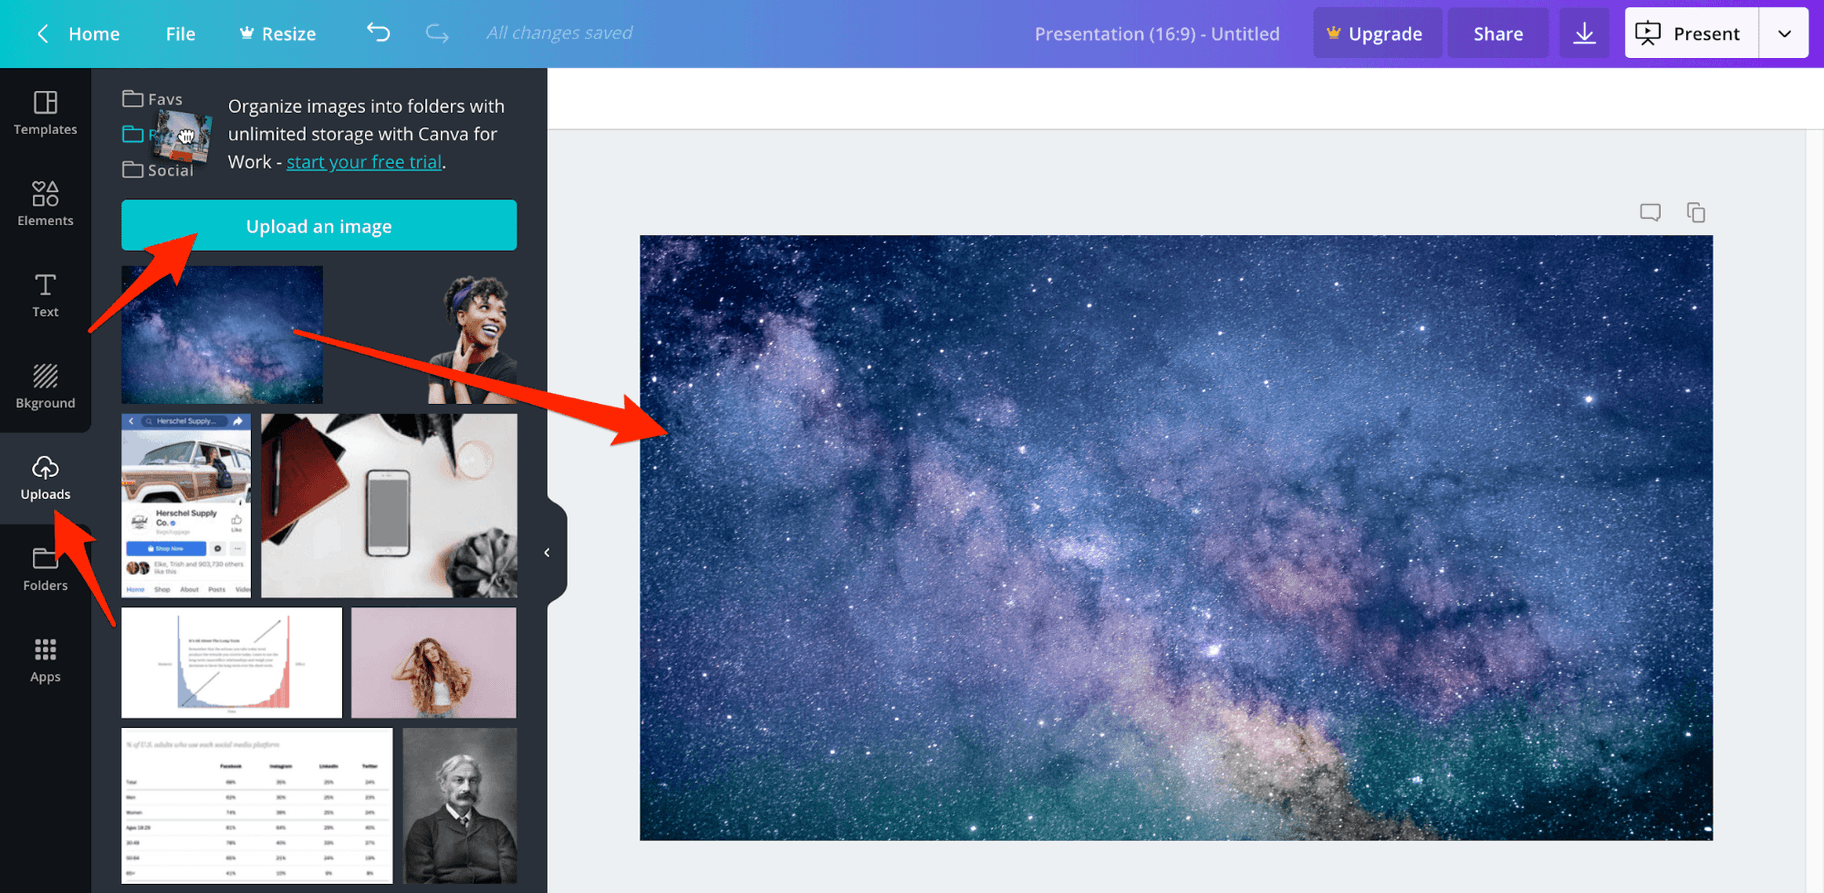 Upload Image to Canva